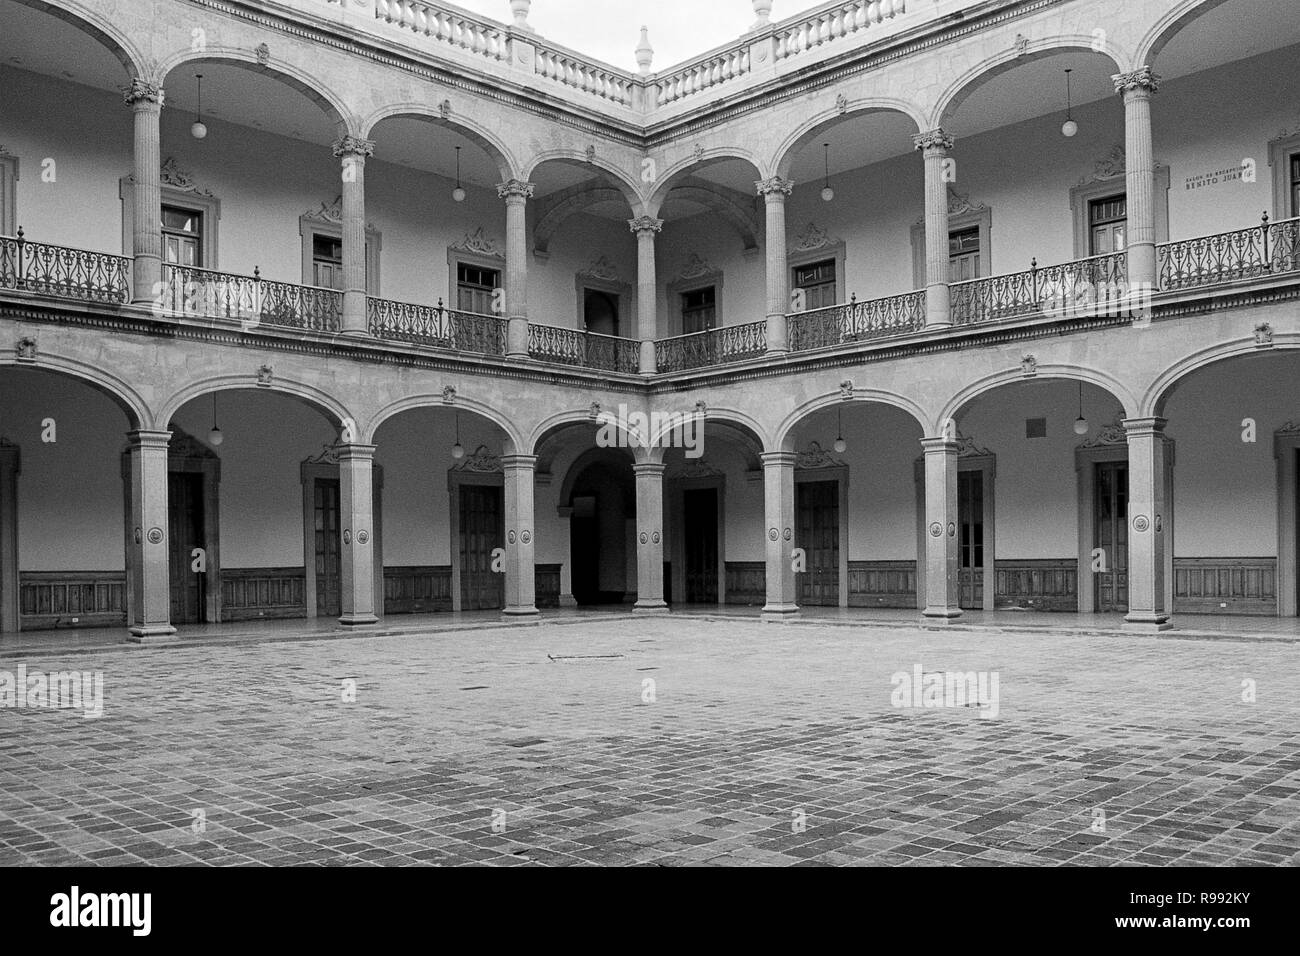 MONTERREY, NL/MEXICO - NOV 10, 2003: Interiors detail of the Governor's Palace. A museum since 2006. Stock Photo